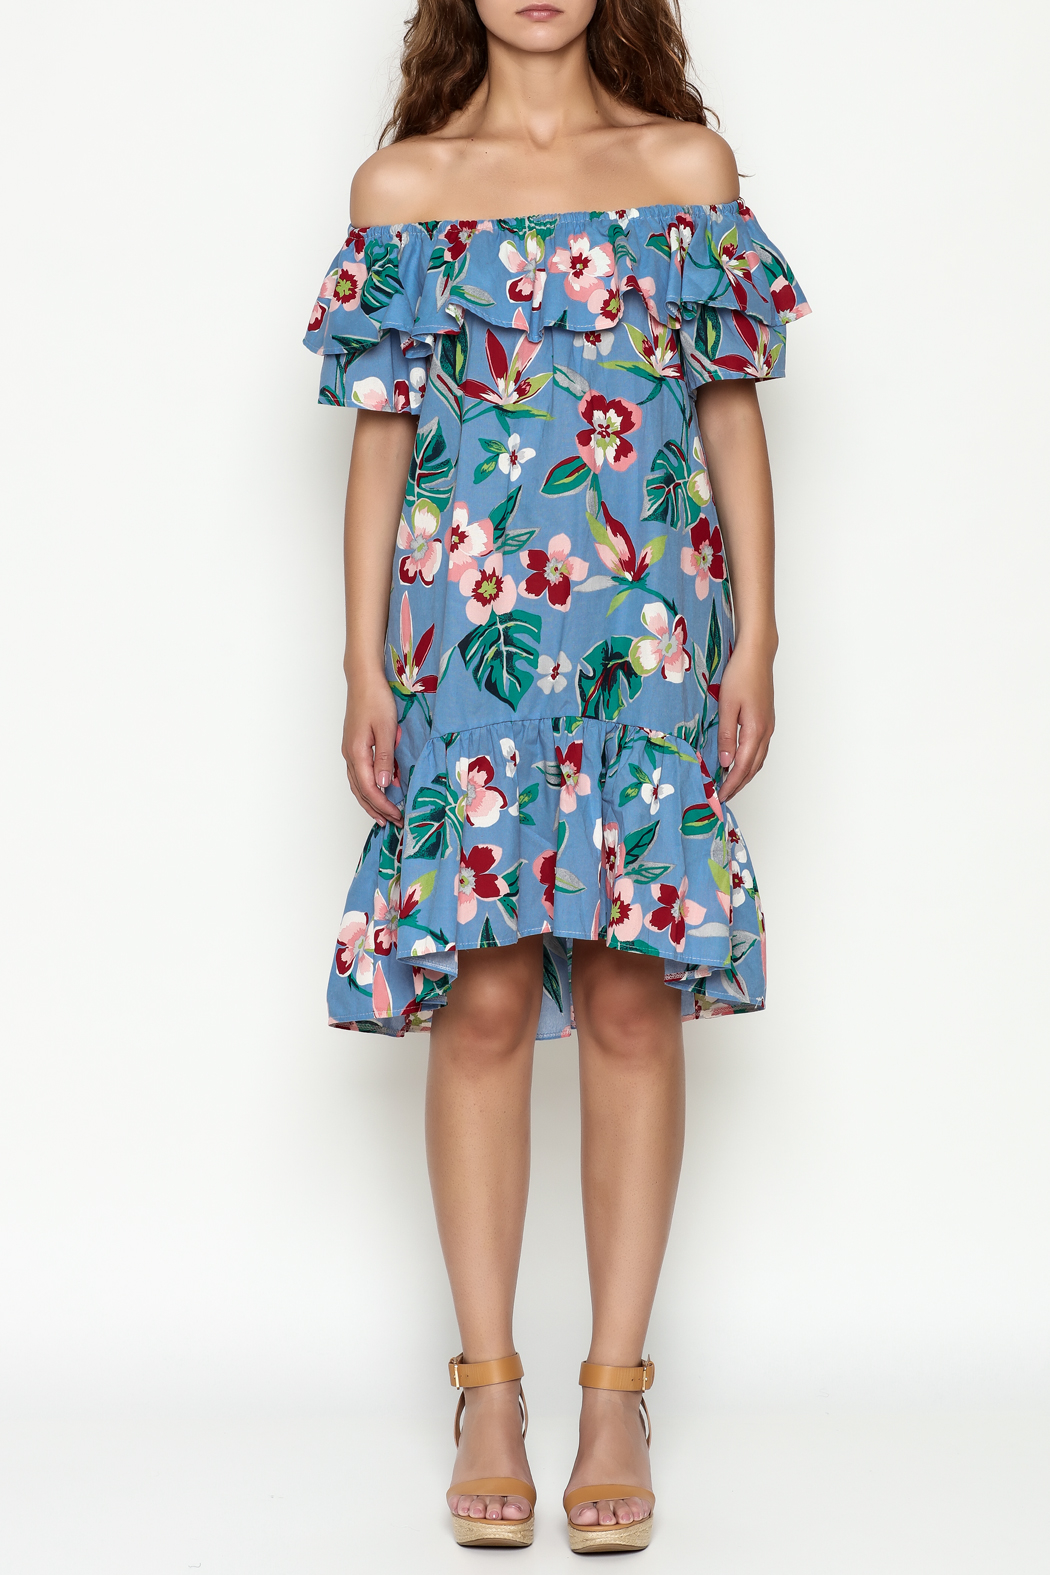 THINK CLOSET Flirty floral dress - Front Full Image